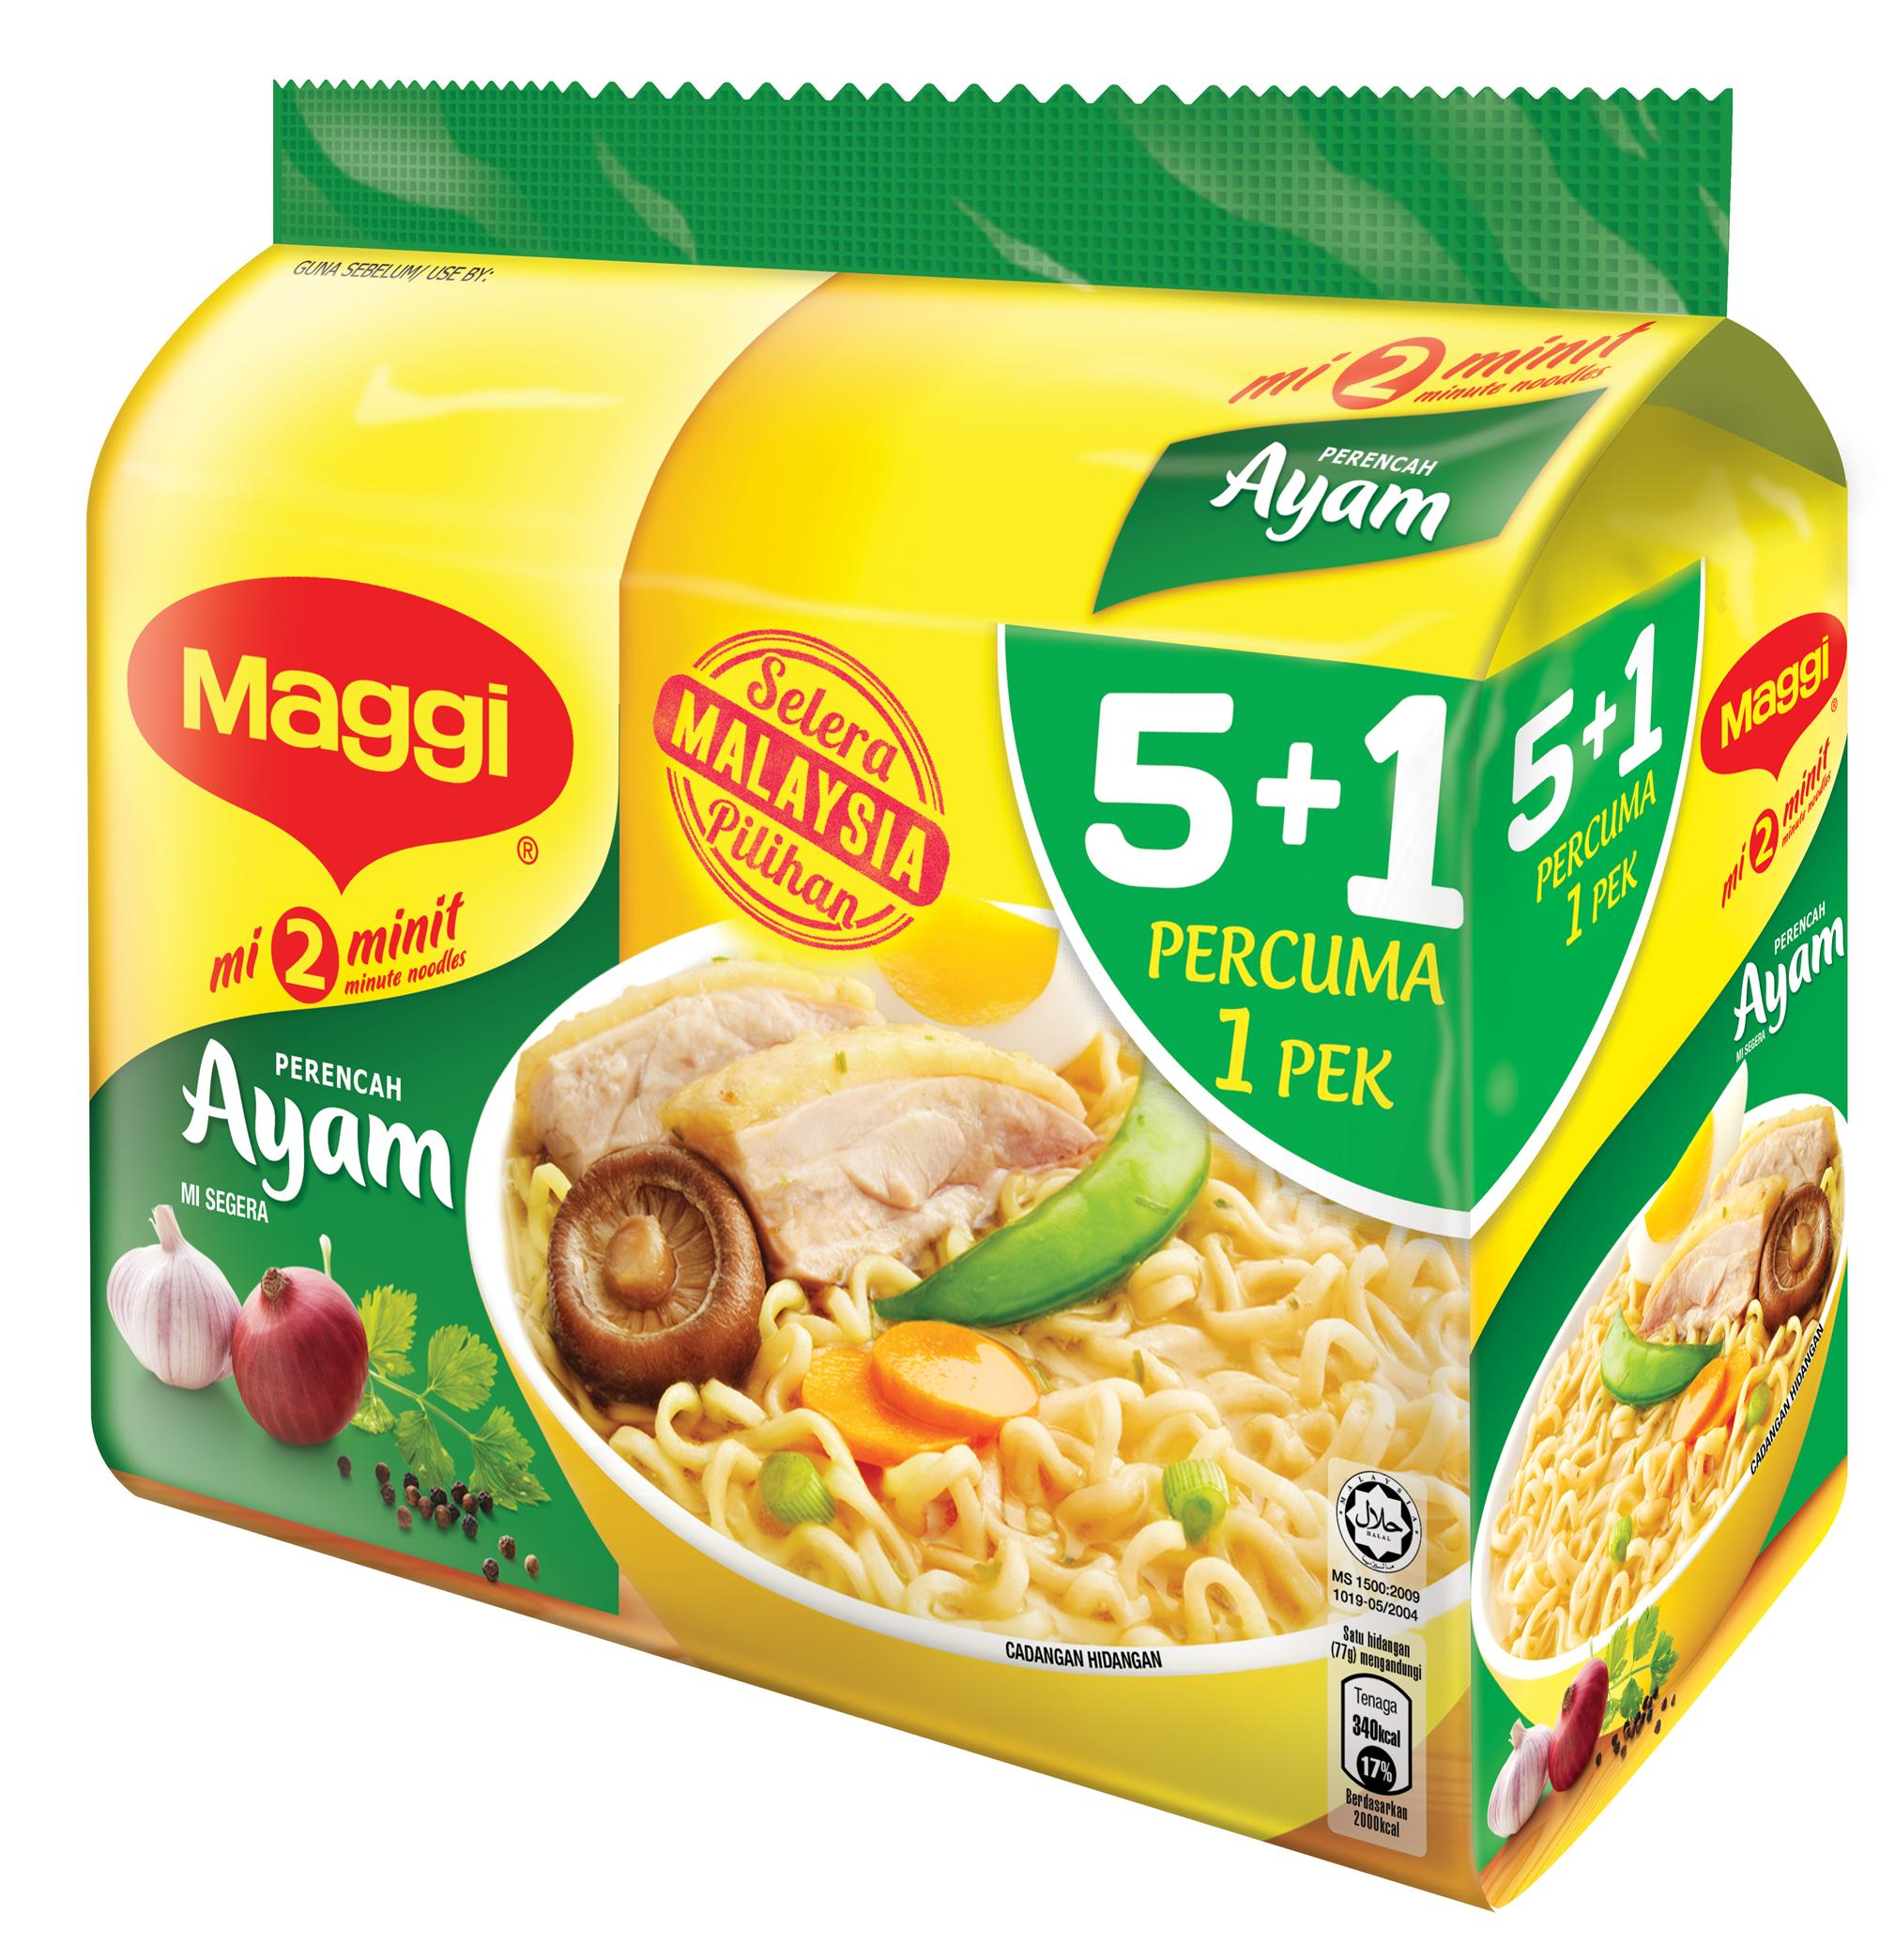 distribution costs of maggi noodles Maggi noodles exporters, dealers and distributors - get here details of leading companies supplying maggi noodles across the world at competitive price.